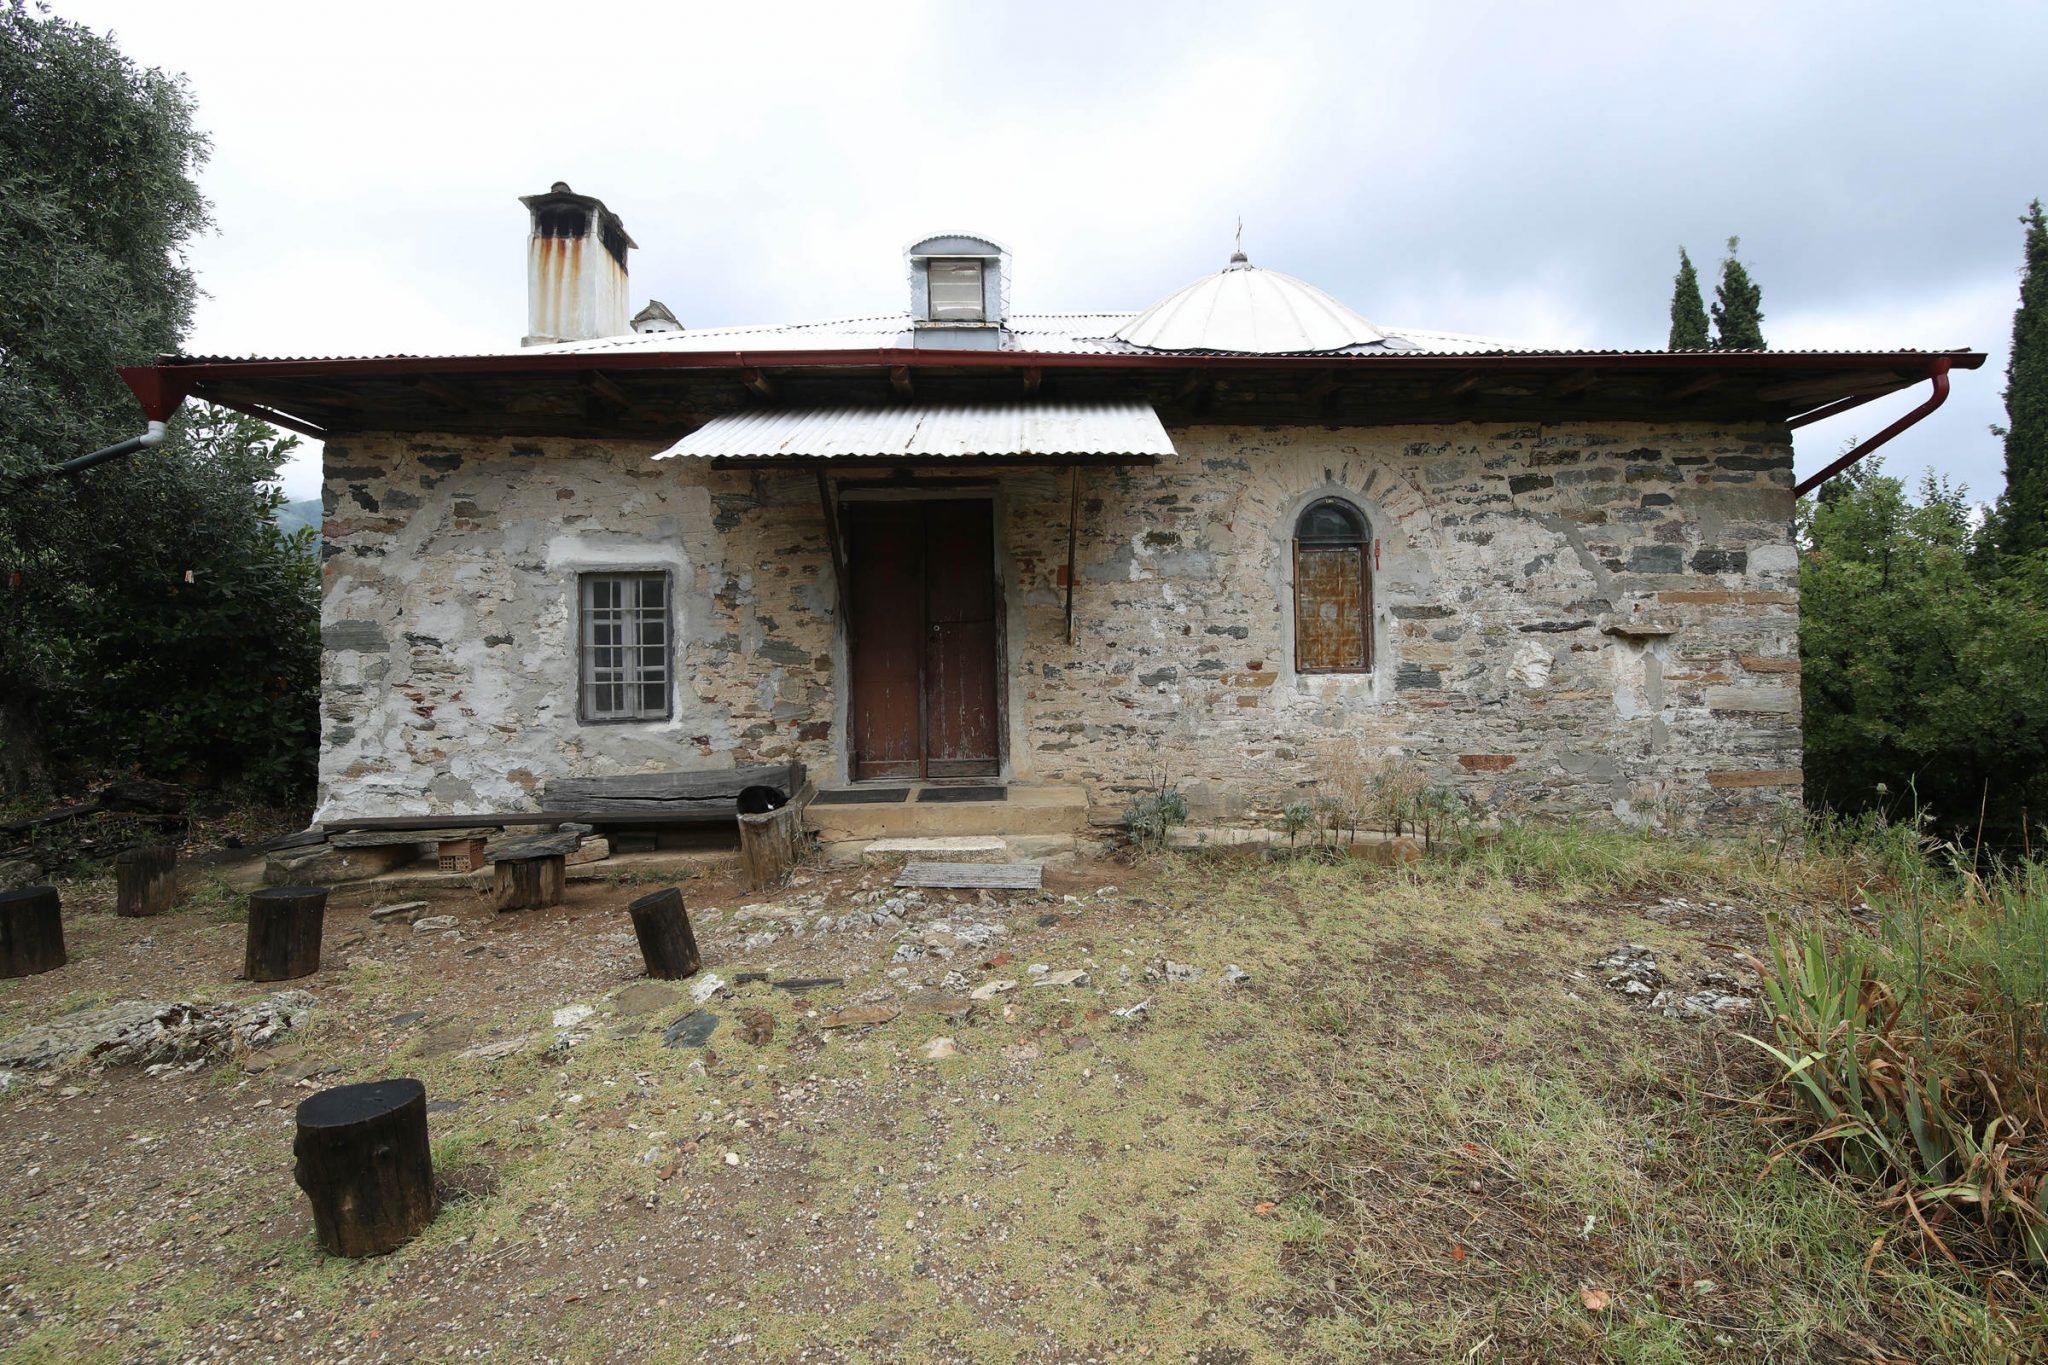 Paisios of Mount Athos' cell - front view